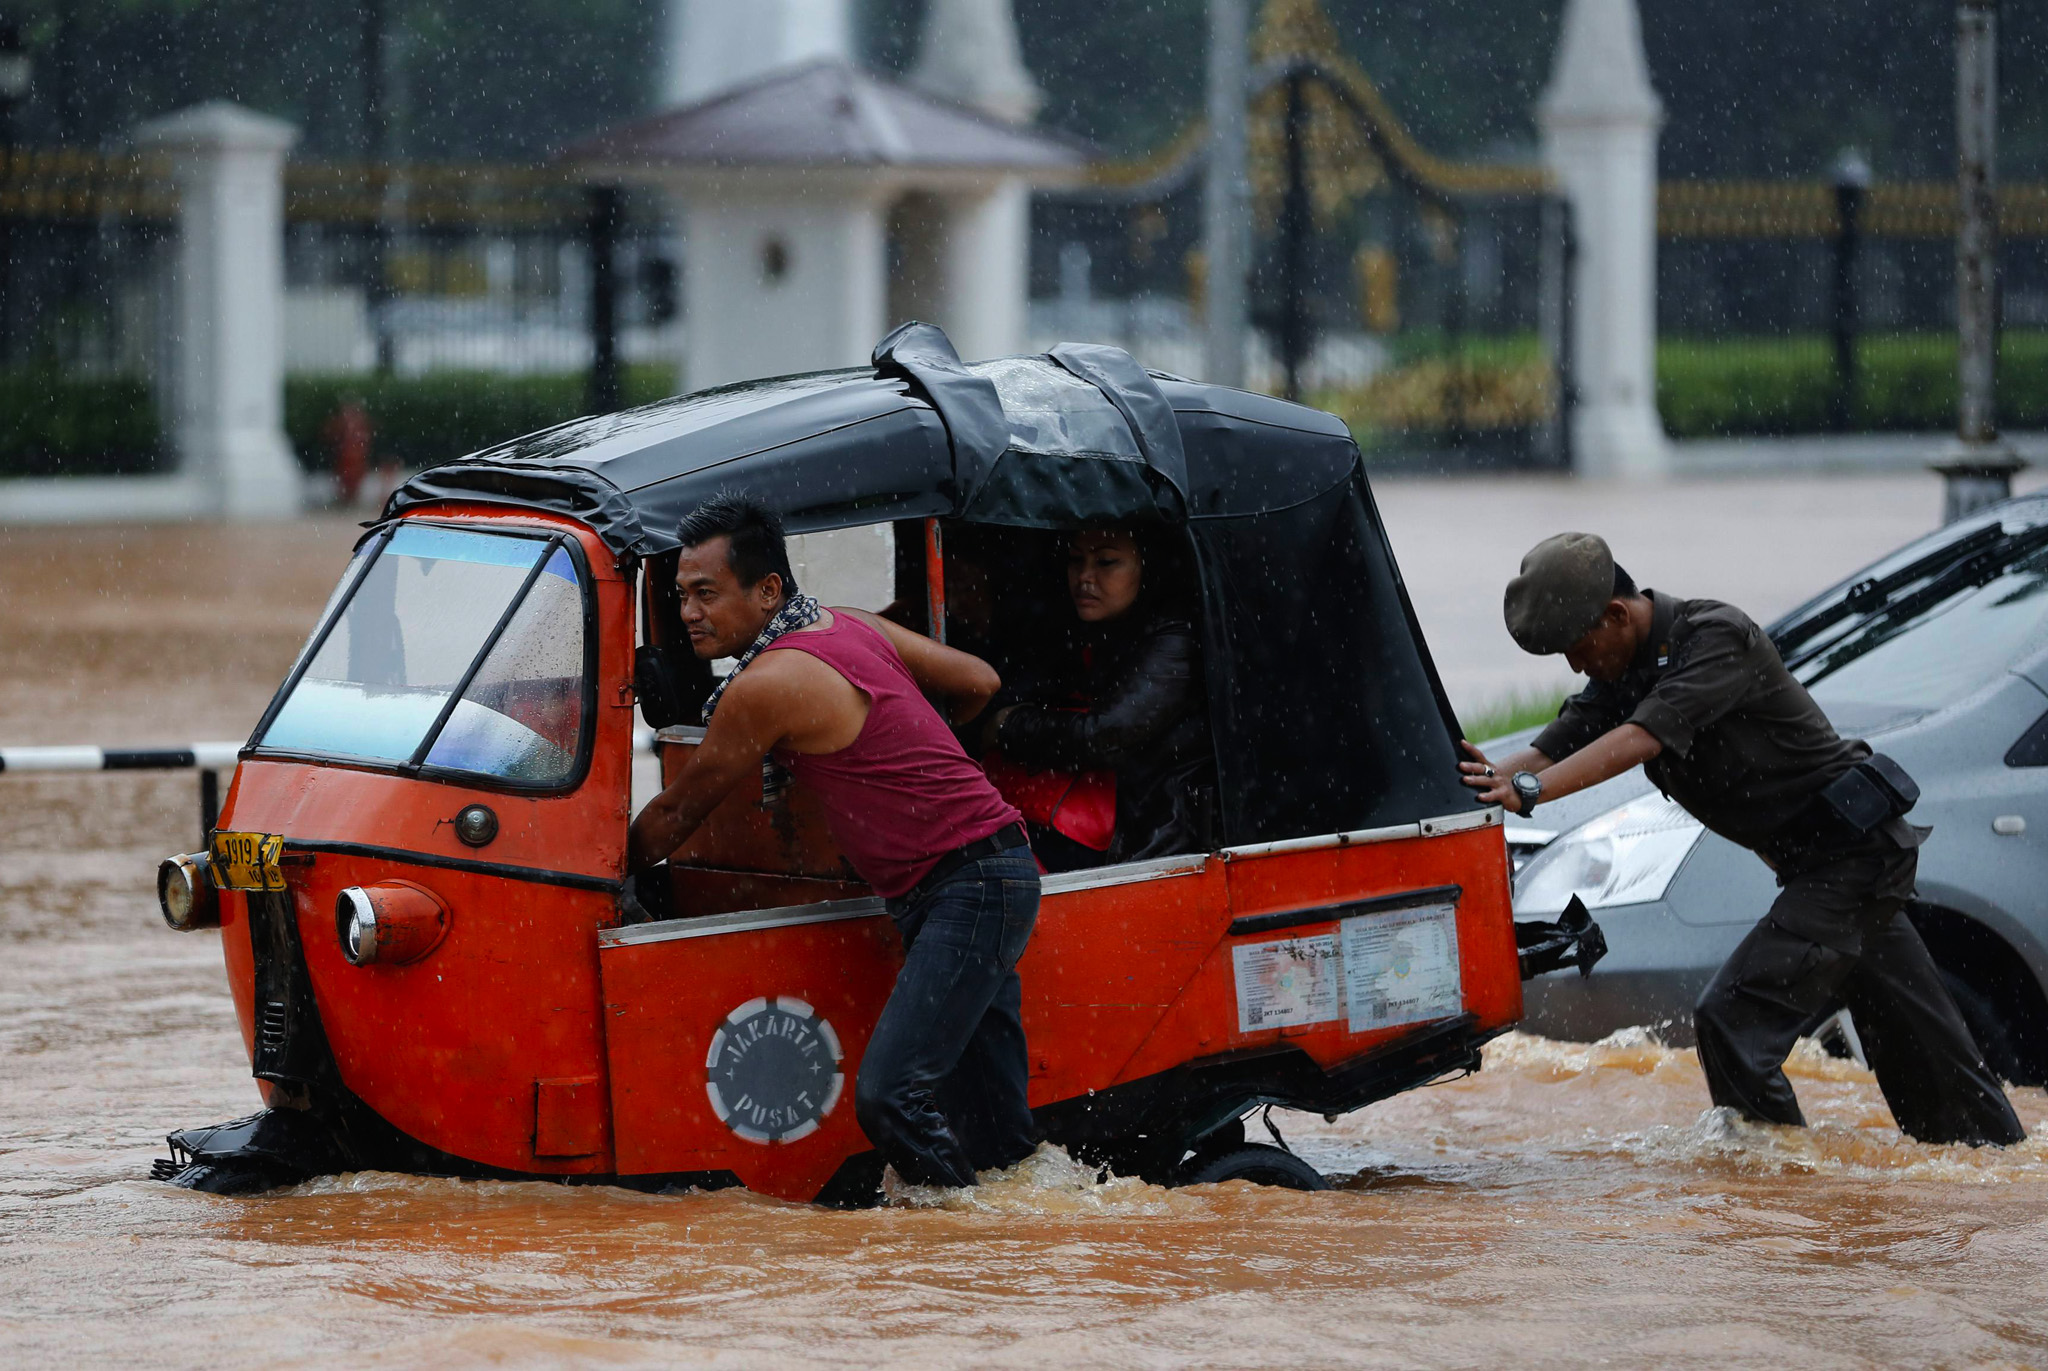 A driver pushes his Baja vehicle through flood waters outside the Presidential Palace, after heavy seasonal rains flooded parts of Jakarta, Indonesia.